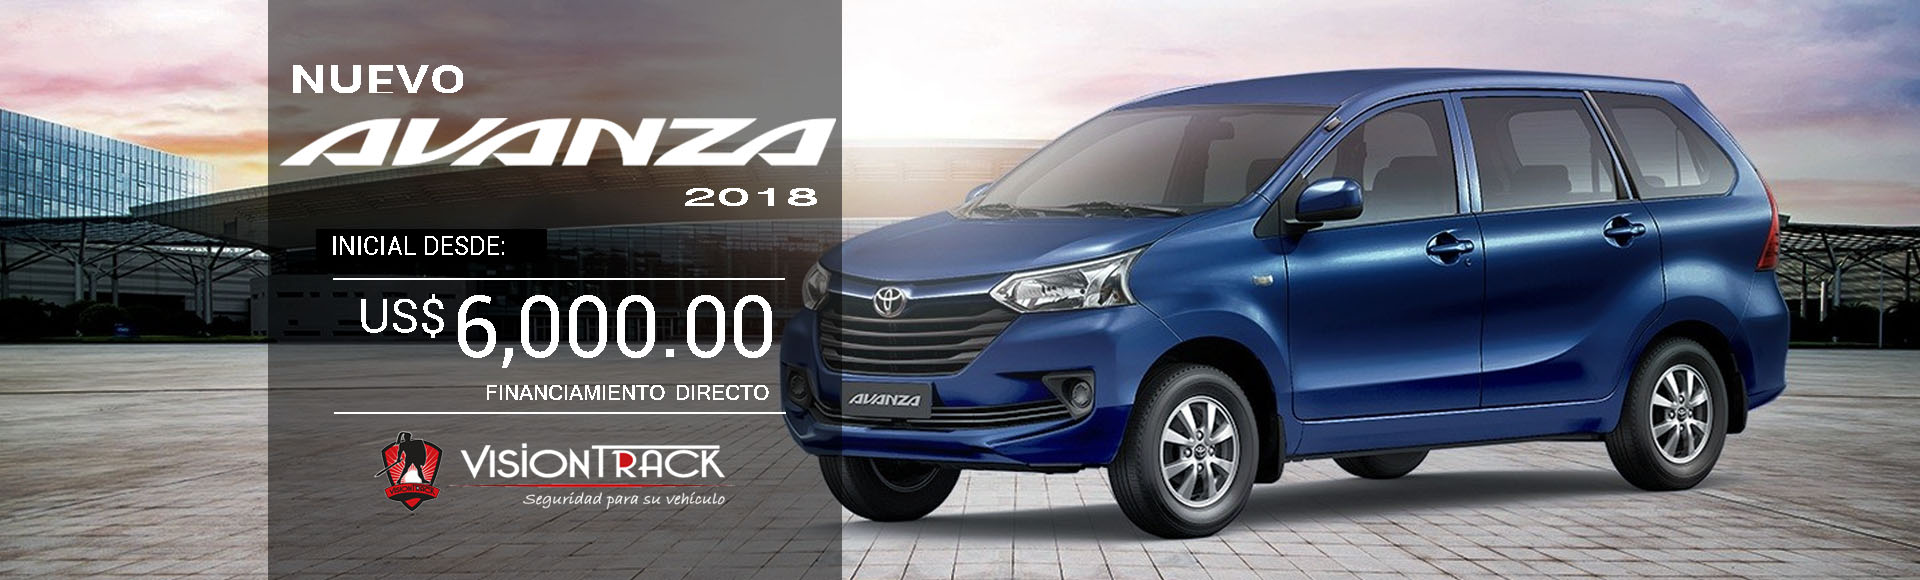 visiontrack-toyota-avanza-banner-2018